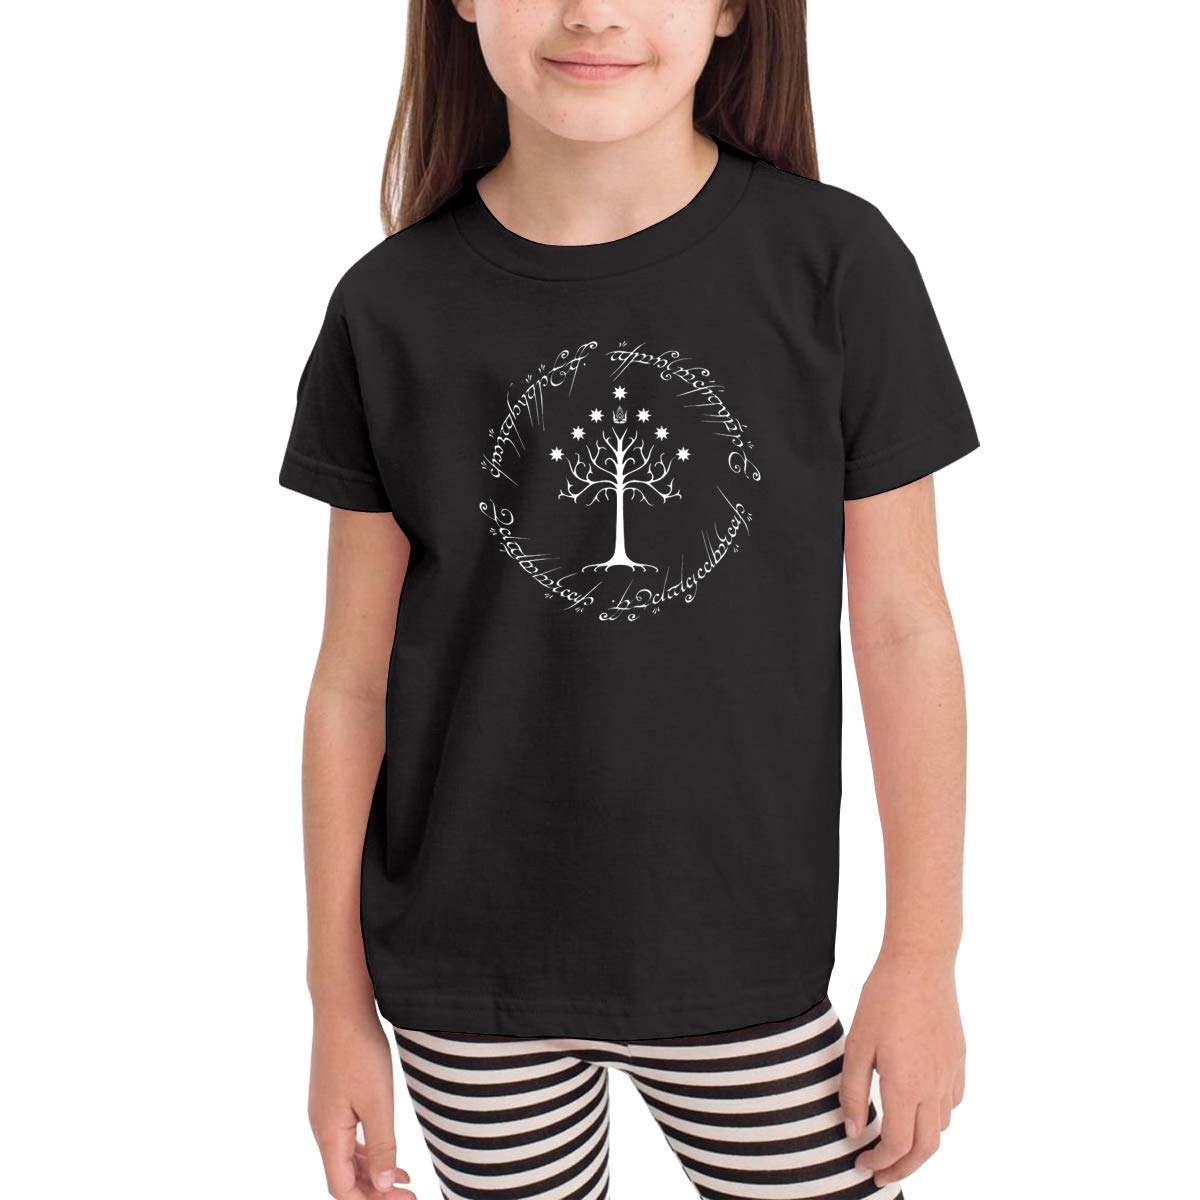 White Tree of Gondor Ring King 100/% Cotton Toddler Baby Boys Girls Kids Short Sleeve T Shirt Top Tee Clothes 2-6 T